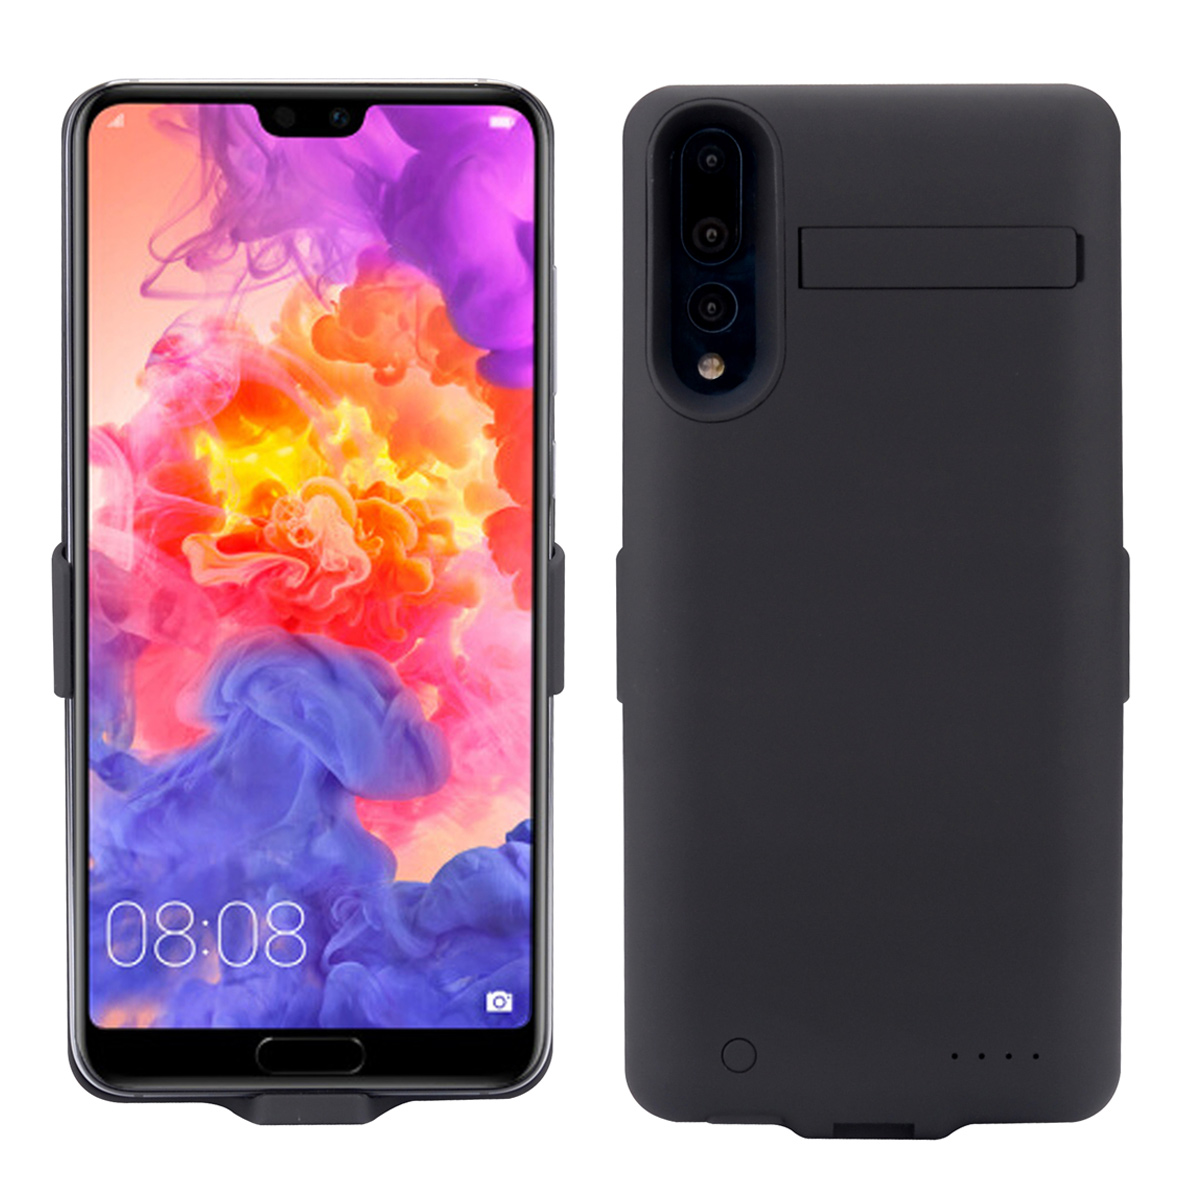 CASEWIN Battery Charger Case For <font><b>Xiaomi</b></font> Mi 8 <font><b>6000mAh</b></font> <font><b>Power</b></font> <font><b>Bank</b></font> Charging Case External Backup Charger <font><b>Power</b></font> <font><b>bank</b></font> phone case image